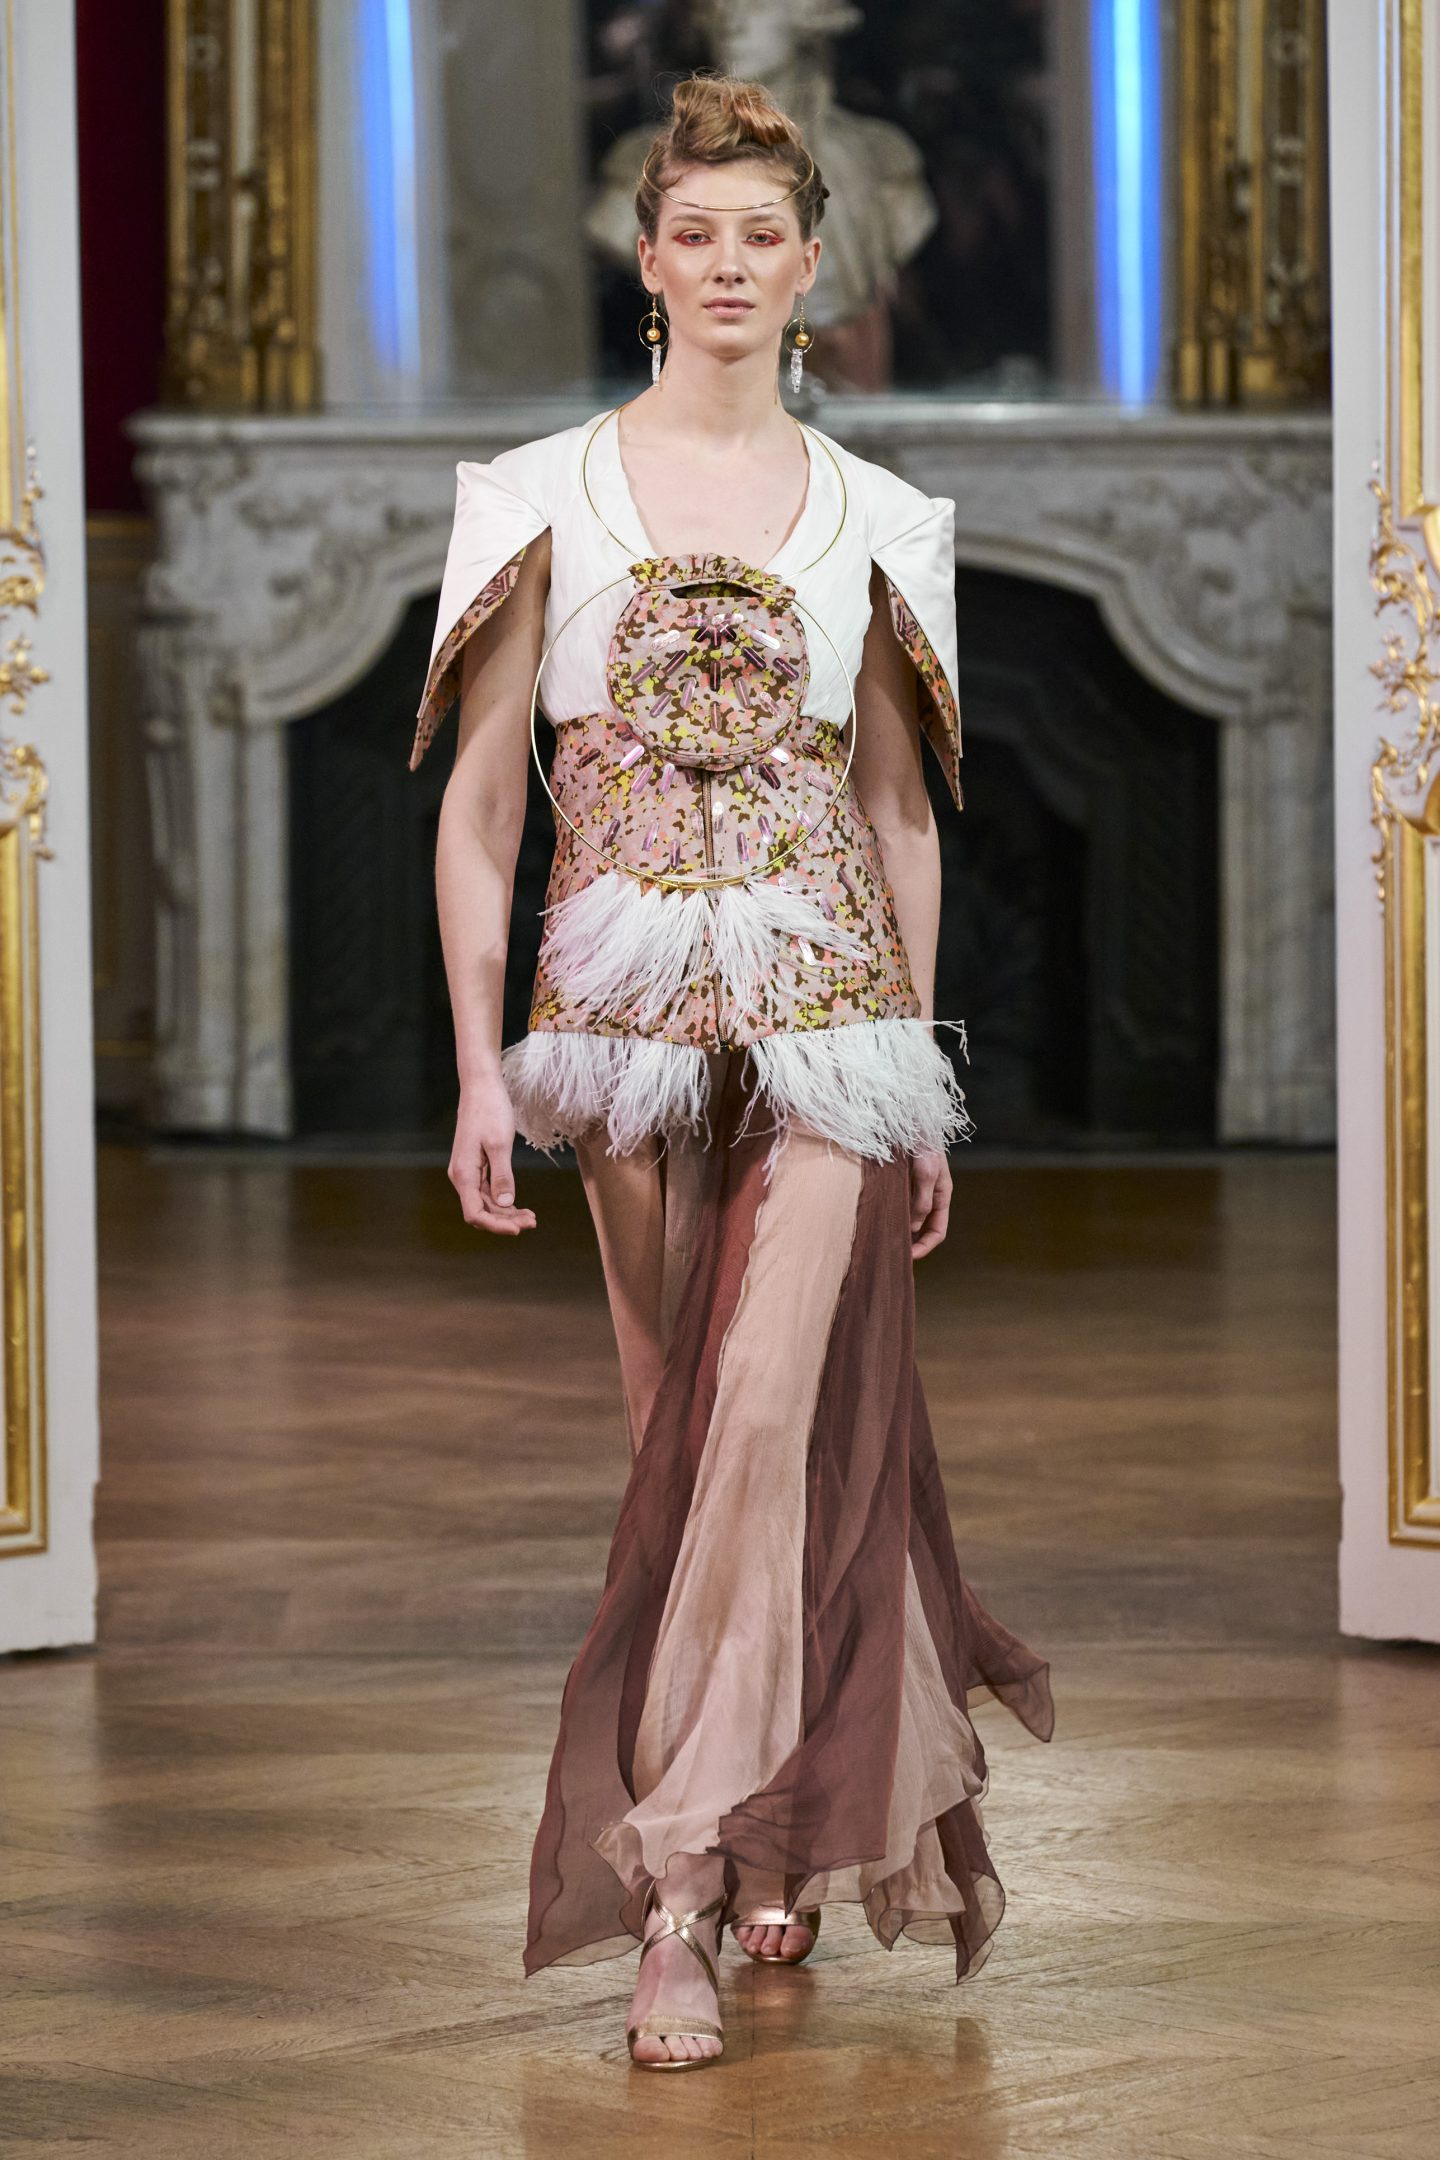 Adeline Ziliox: Paris Haute Couture Fashion Week 2020